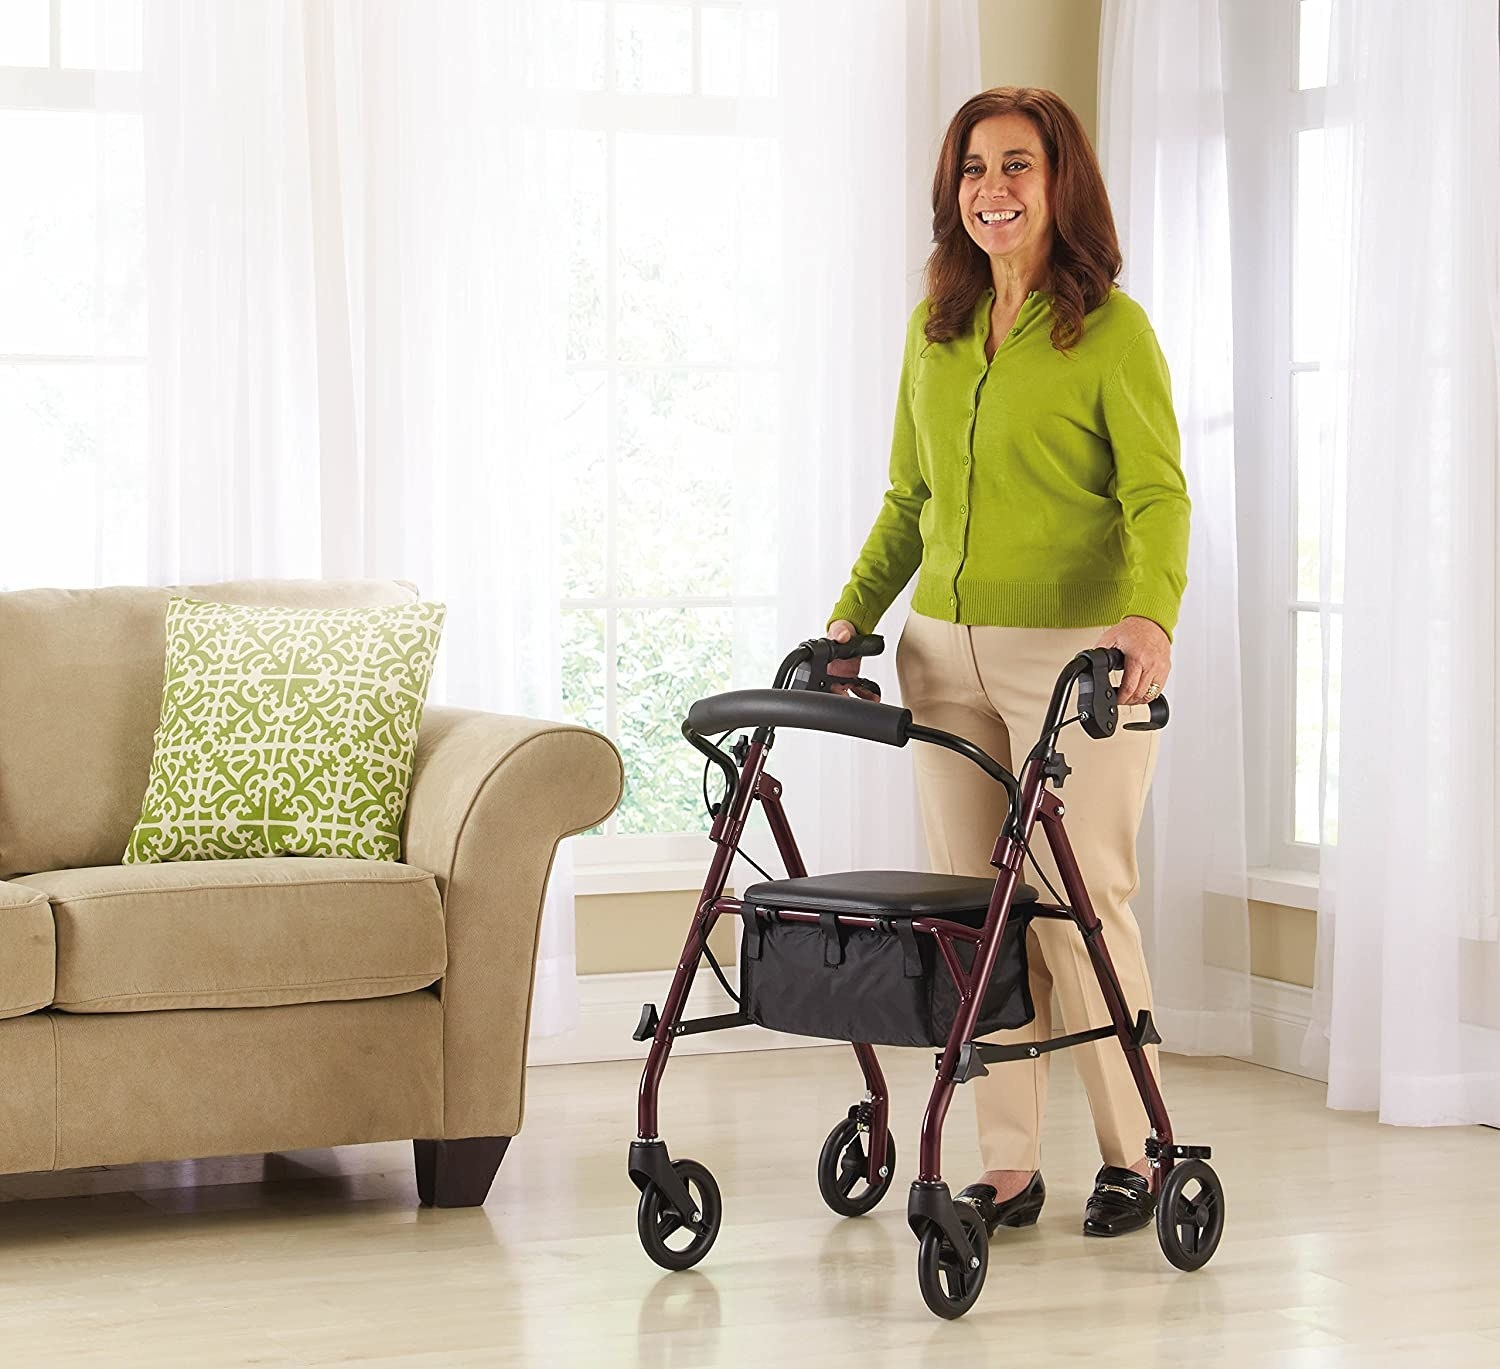 person using the walker to walk across a living room.